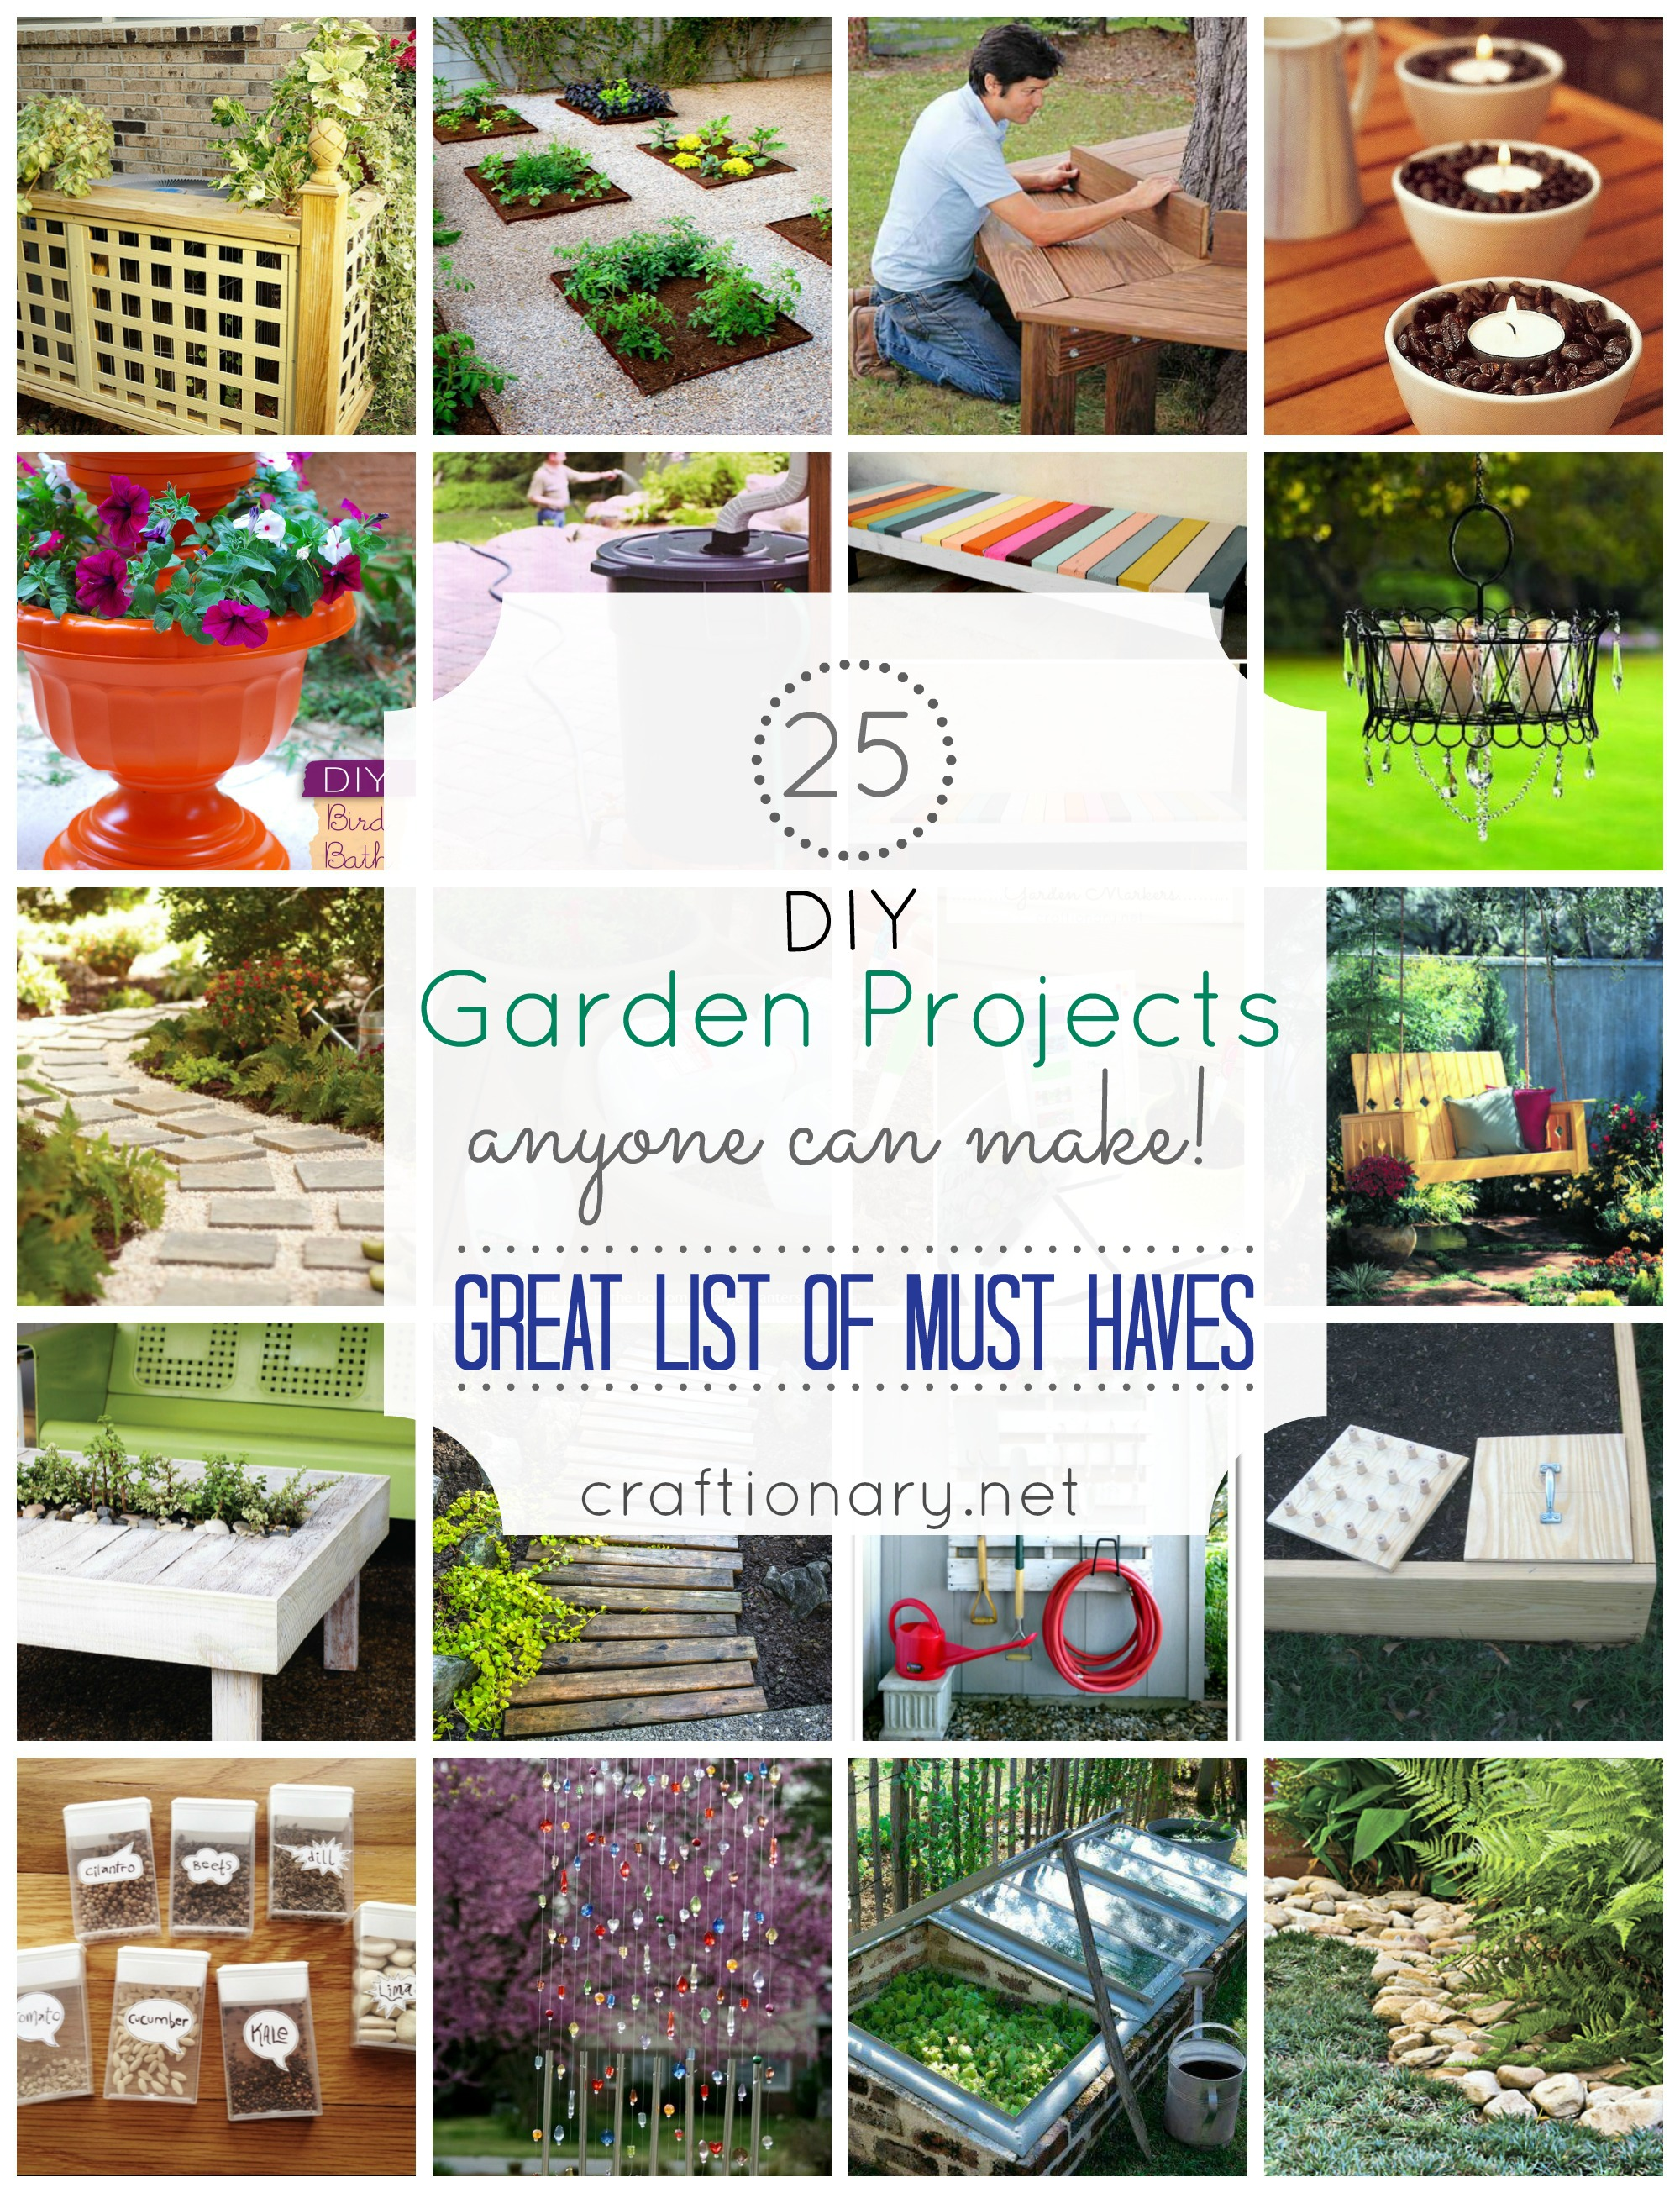 Craftionary diy garden projects solutioingenieria Choice Image